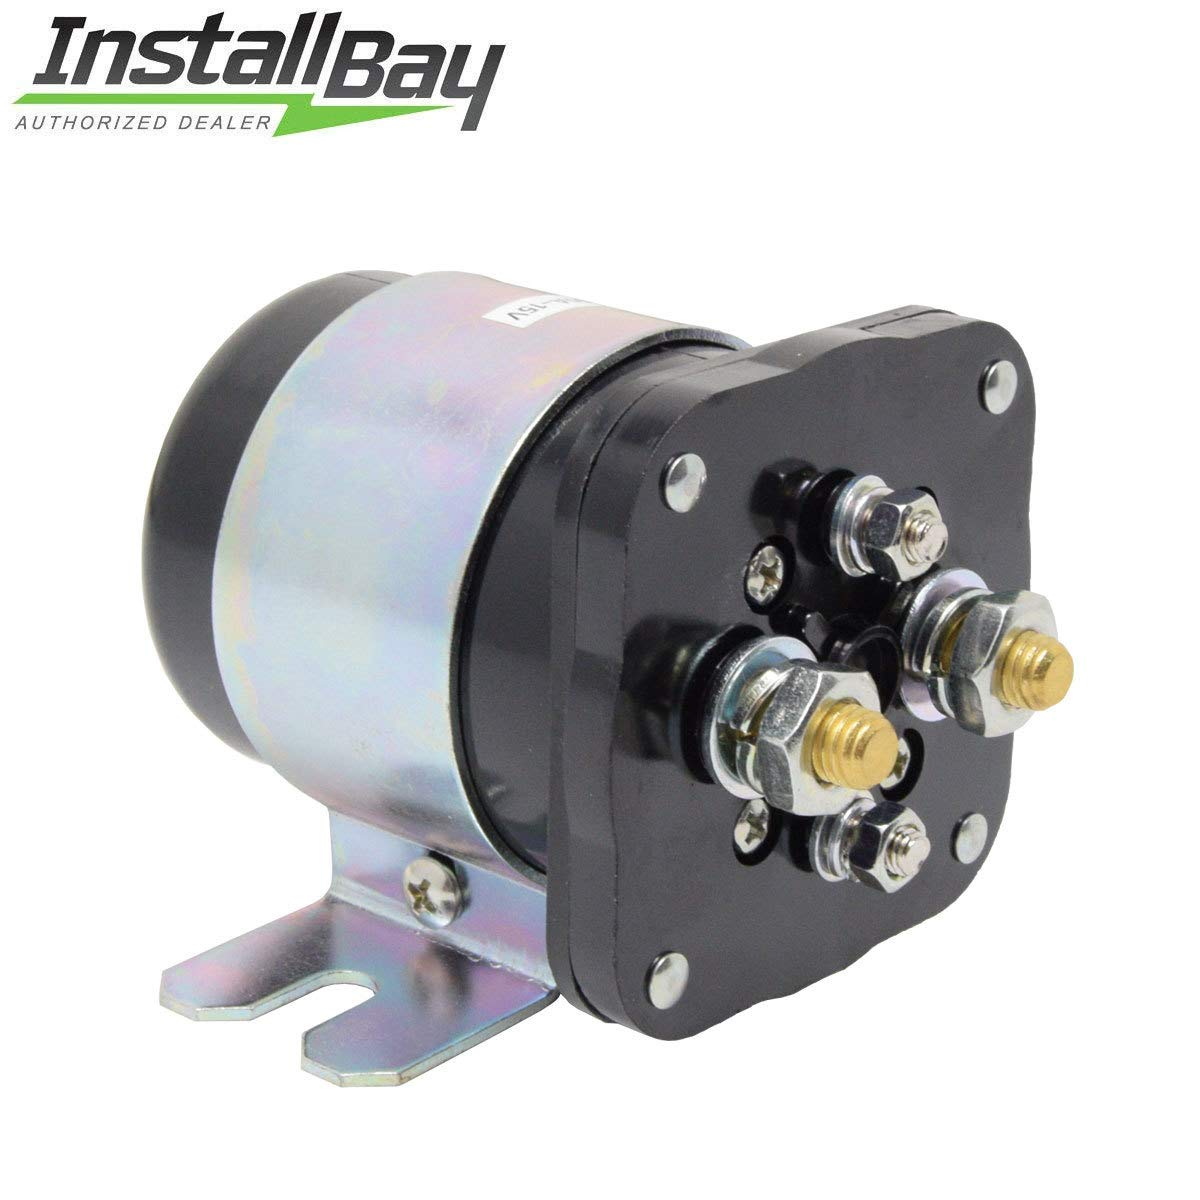 Power Relay Battery Isolator 500 Amp High Current For Needed 12v Metra Install Bay Automotive